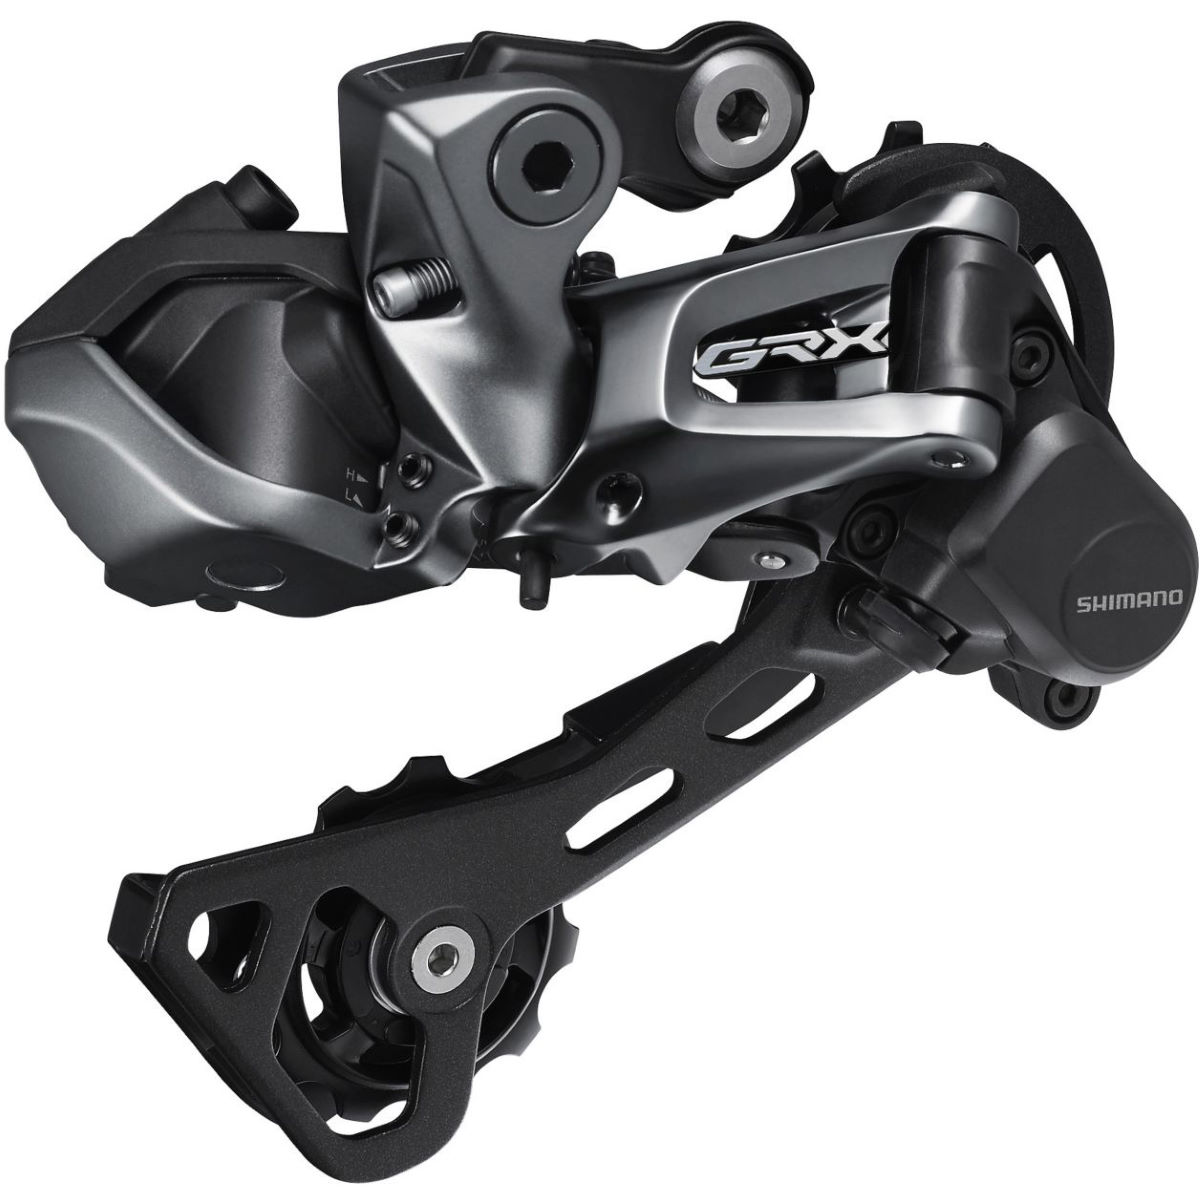 Shimano RX817 Di2 1x11 Speed Shadow+ Rear Derailleur   Rear Derailleurs